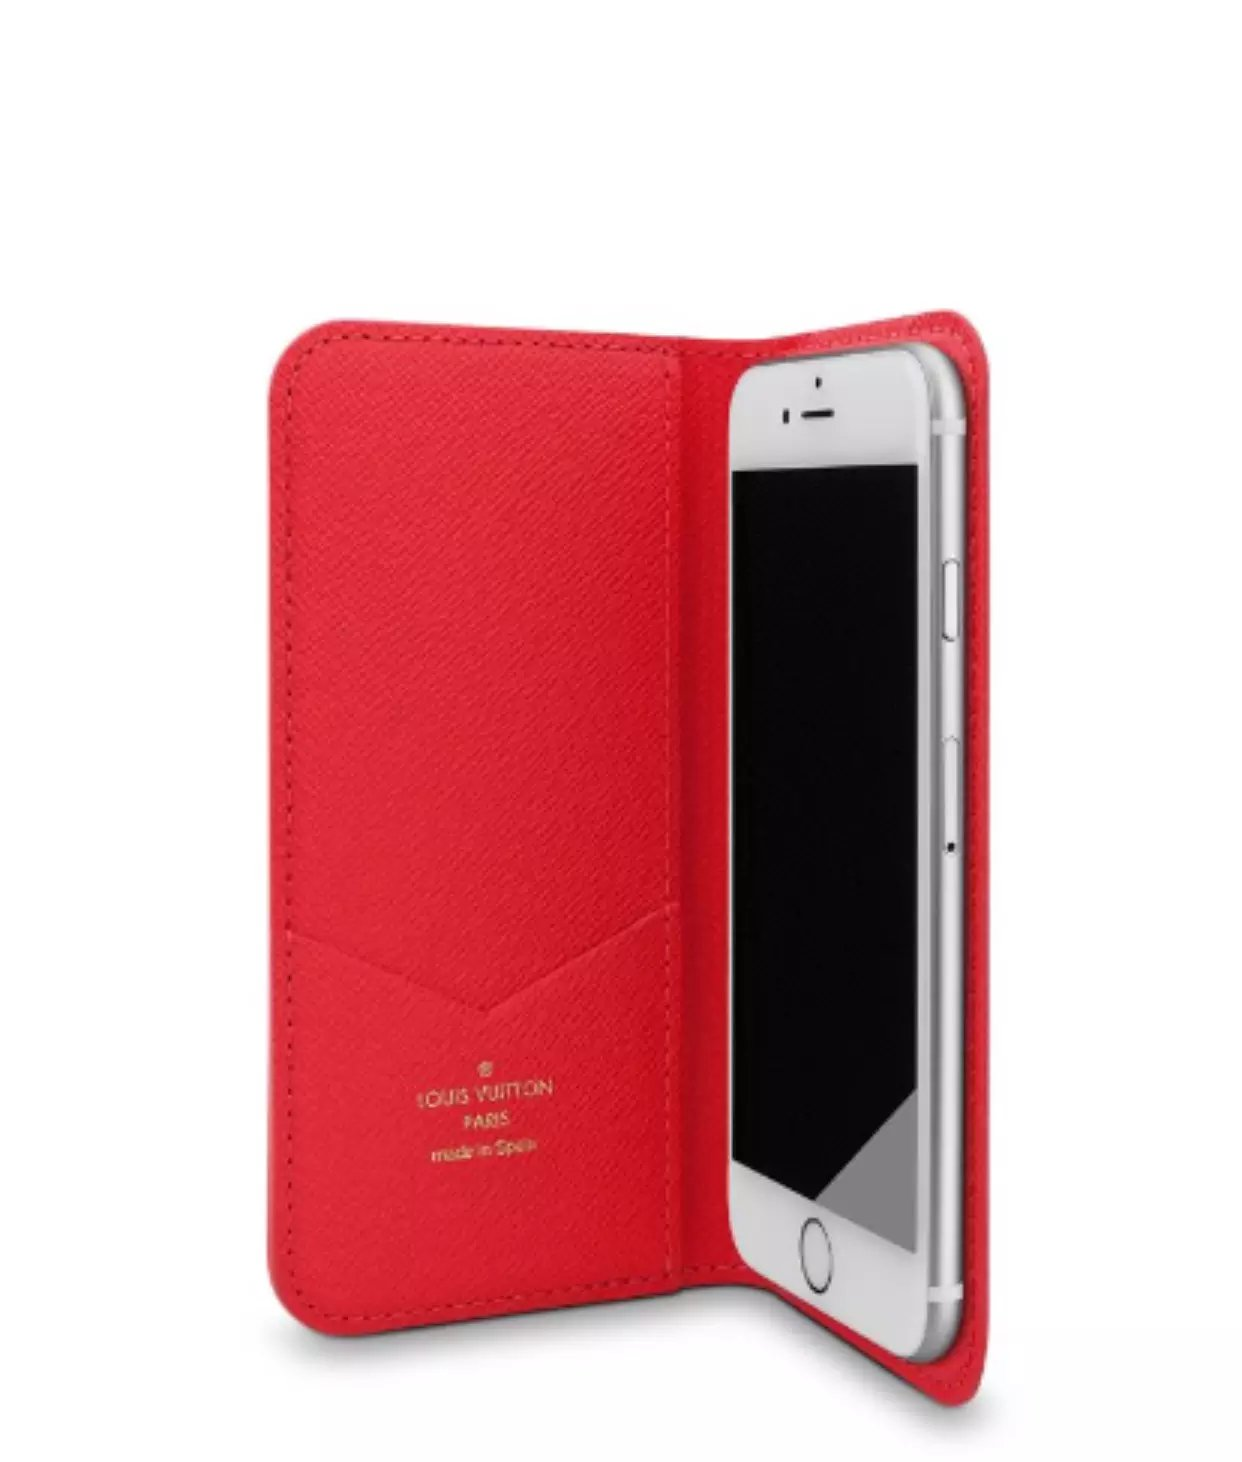 iphone klapphülle iphone case foto Louis Vuitton iphone 8 Plus hüllen pinke iphone 8 Plus hülle ca8 Plus handy 8 Pluslbst gestalten handyhüllen 8 Pluslbst bedrucken iphone 8 Plus alu hülle iphone 8 Plus vorstellung slim ca8 Plus iphone 8 Plus